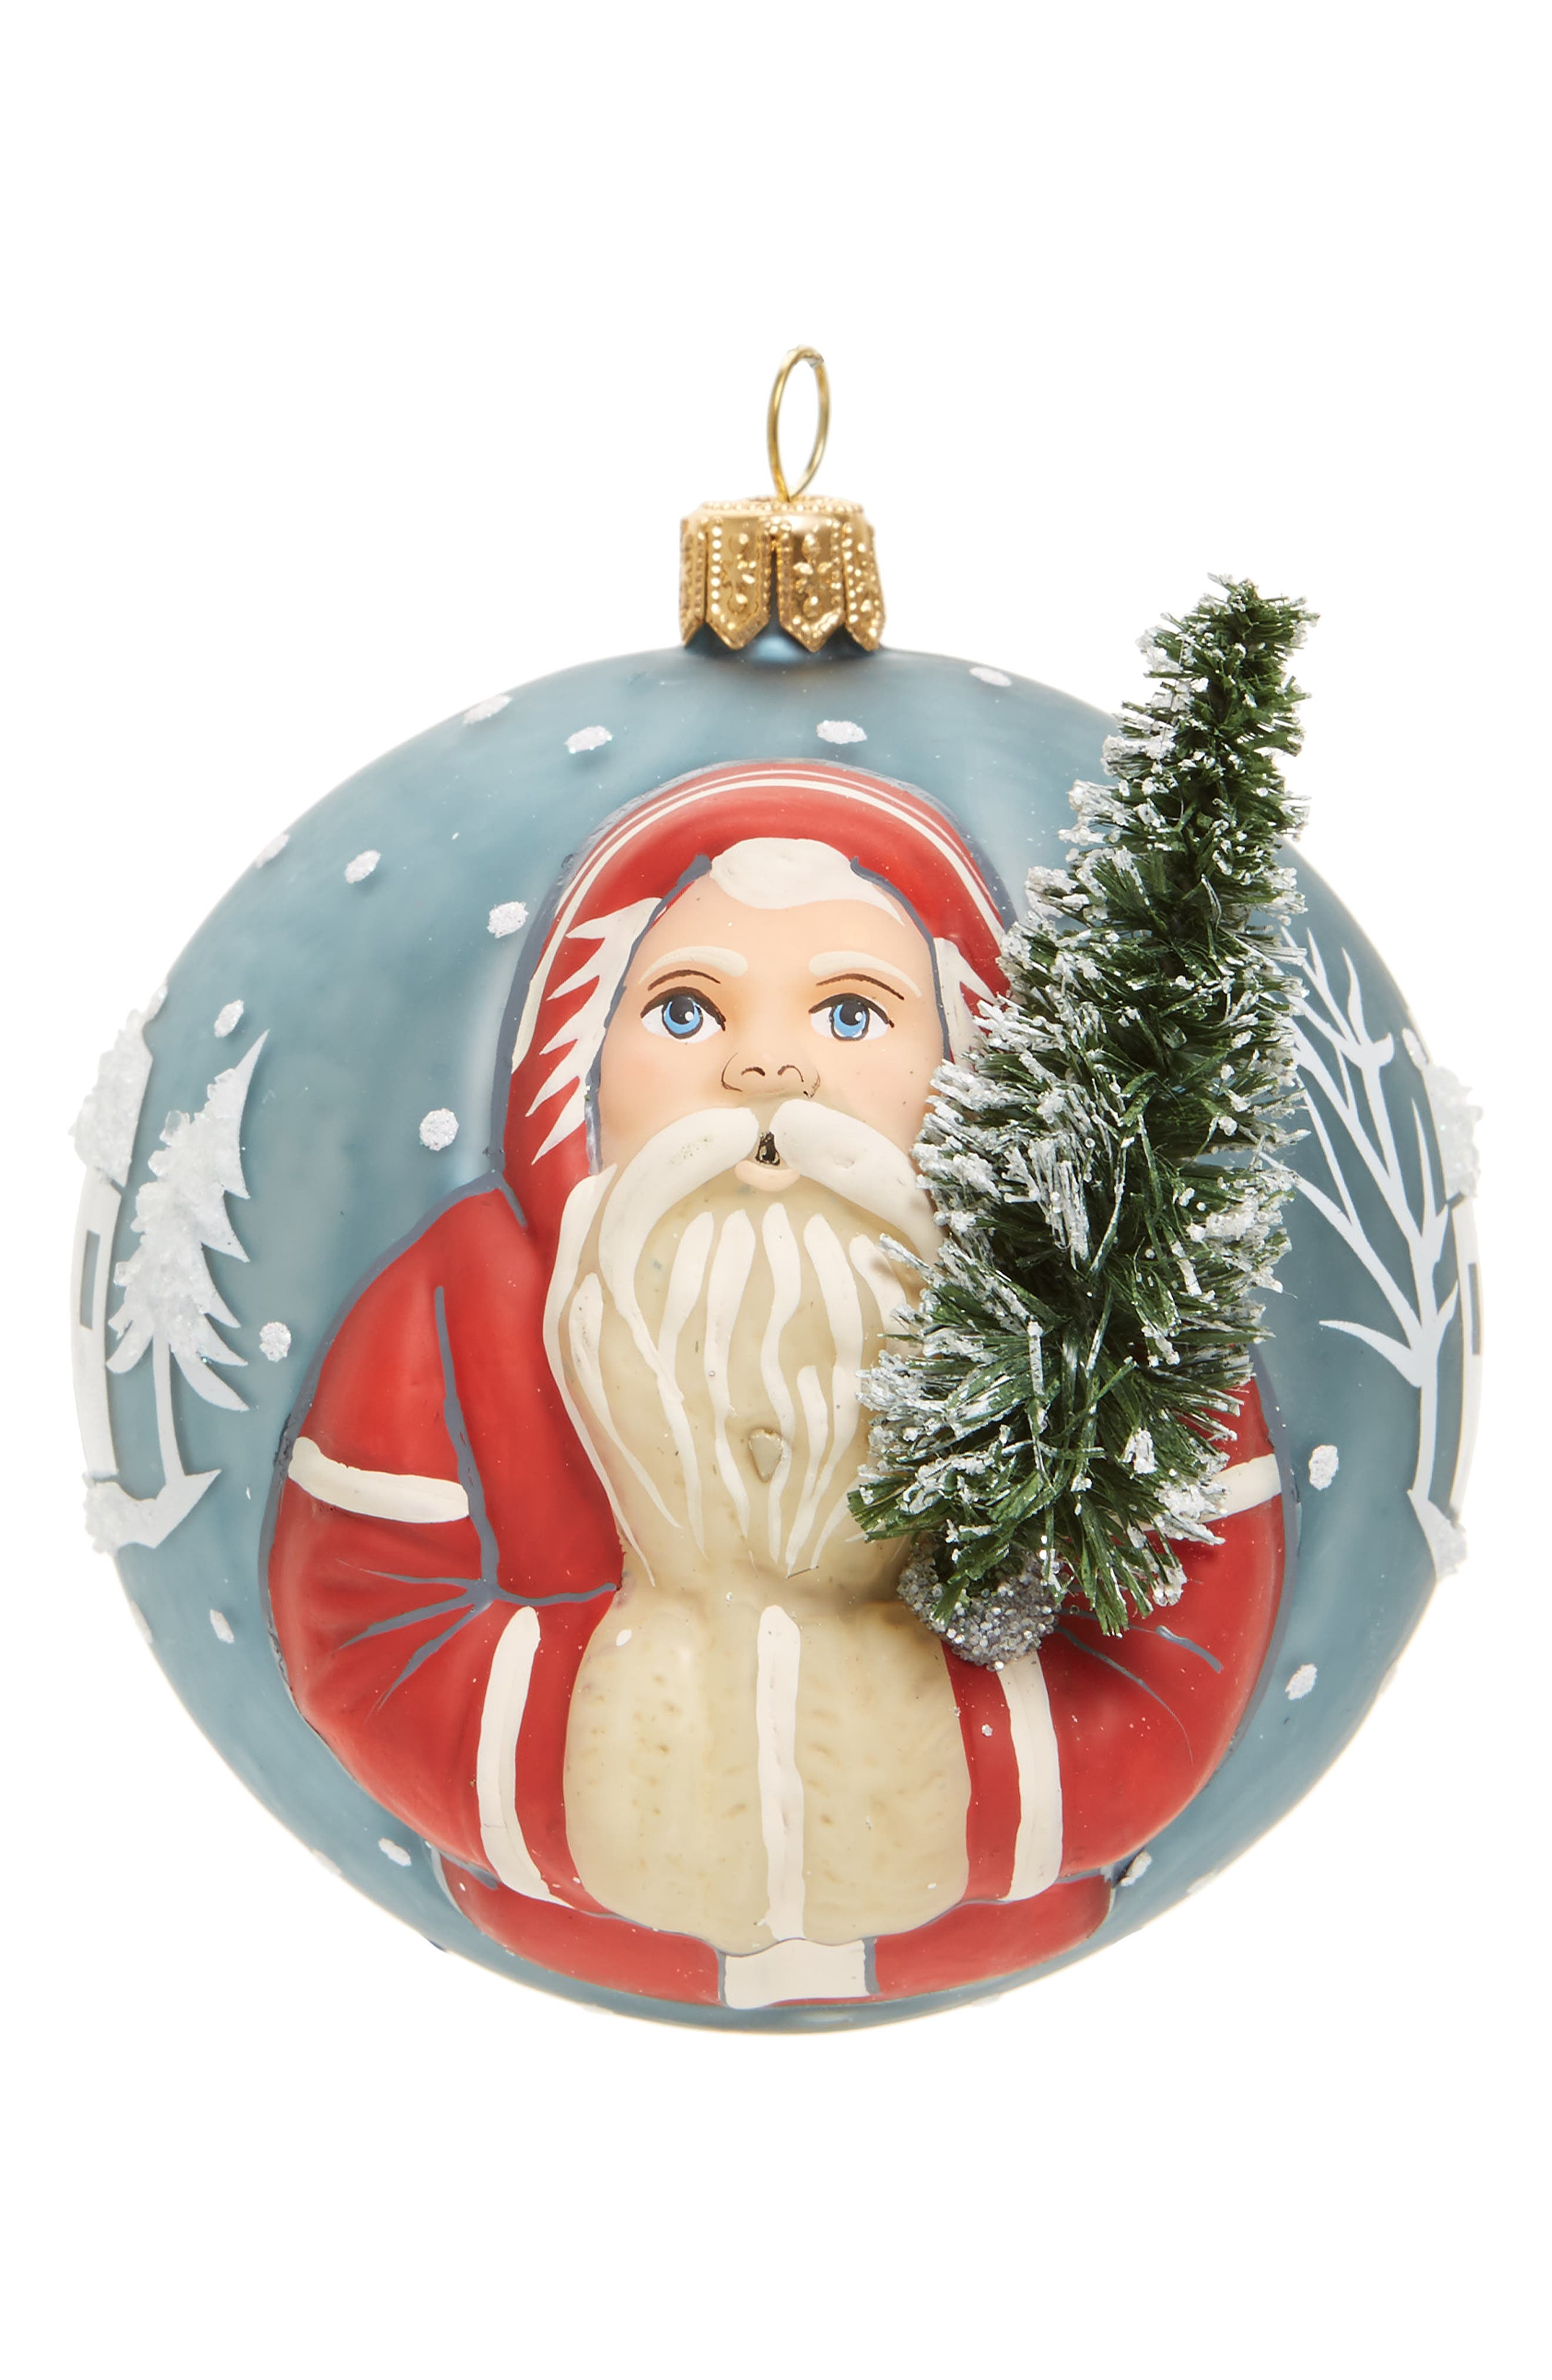 Alternate Image 1 Selected - Vaillancourt Jingle Ball Village Father Christmas Glass Ornament